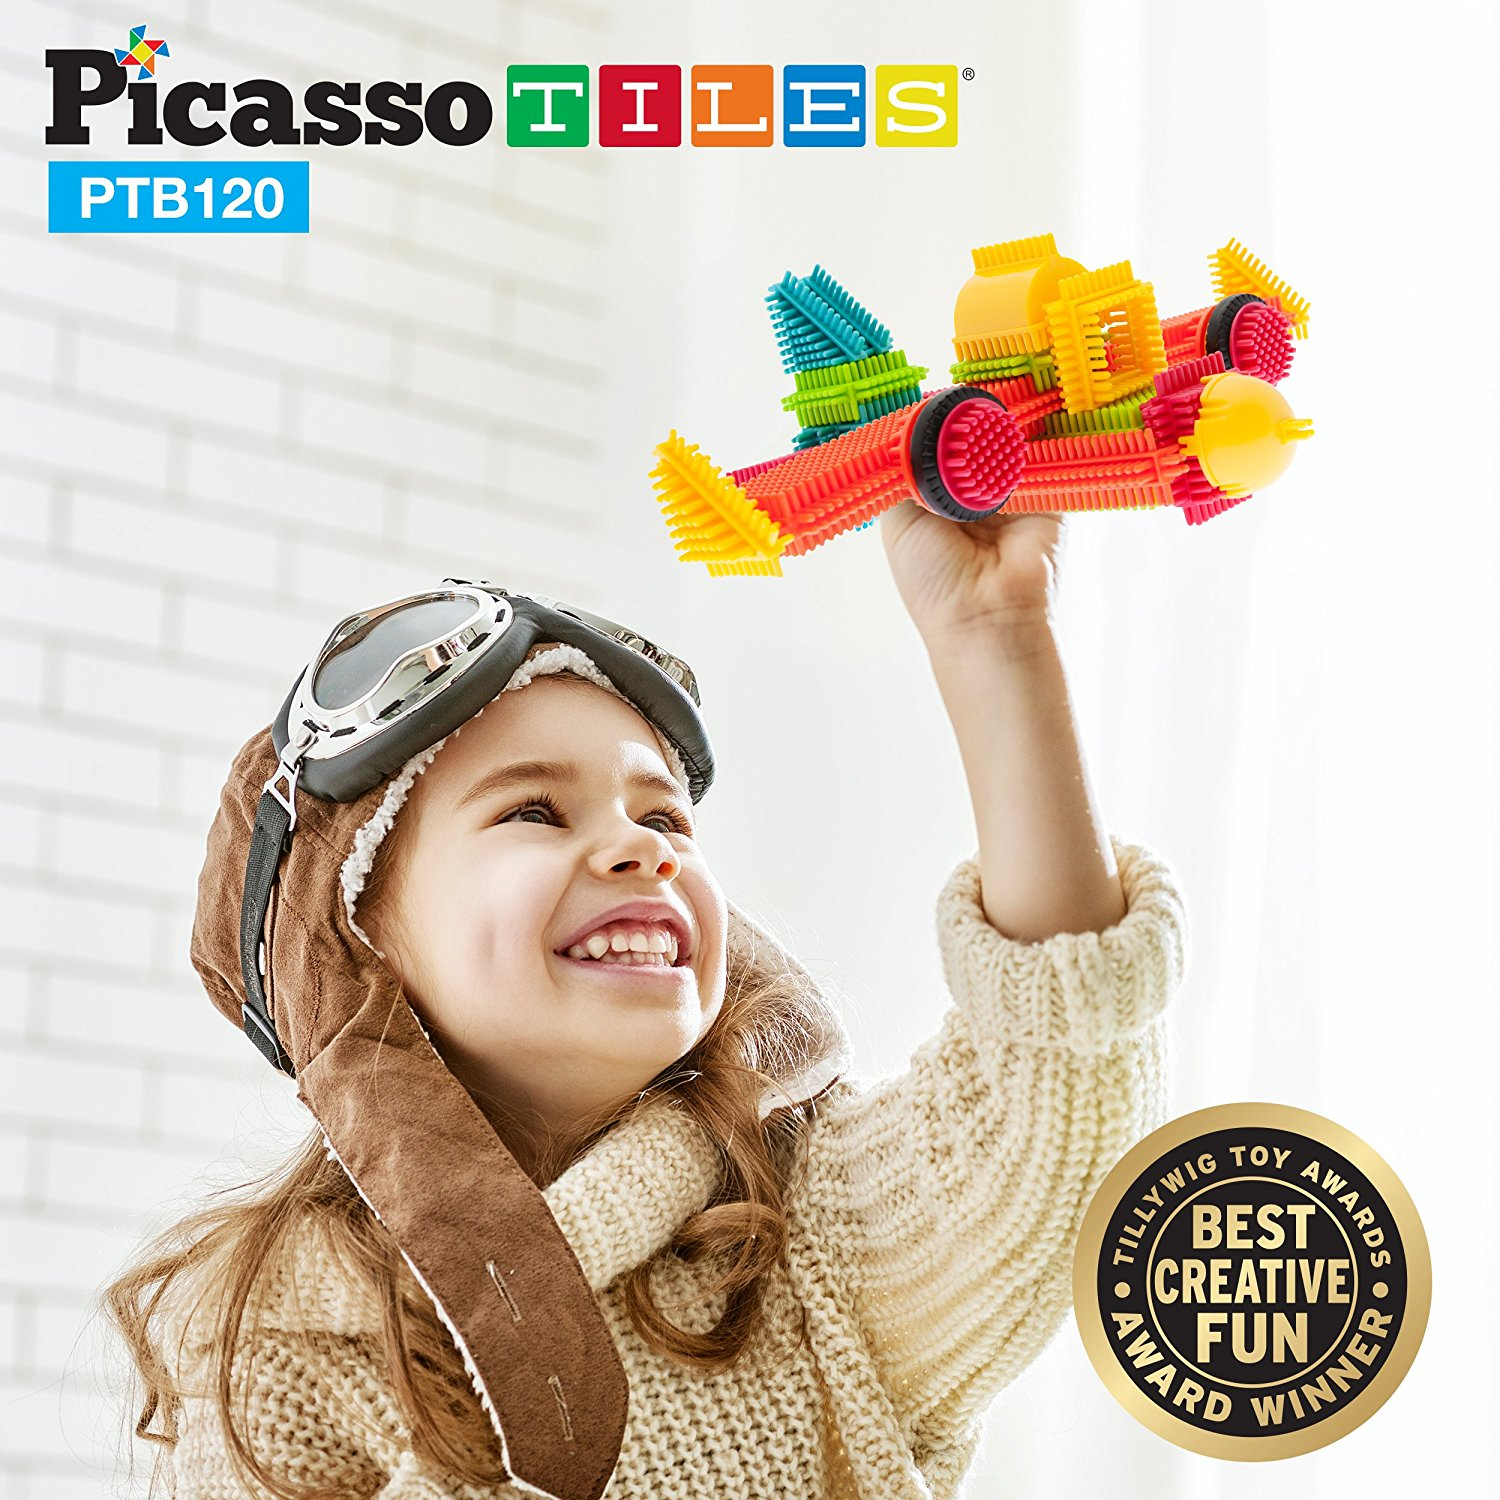 PicassoTiles PTB120 120pcs Bristle Shape 3D Building Blocks Tiles Construction Playboards... by PicassoTiles